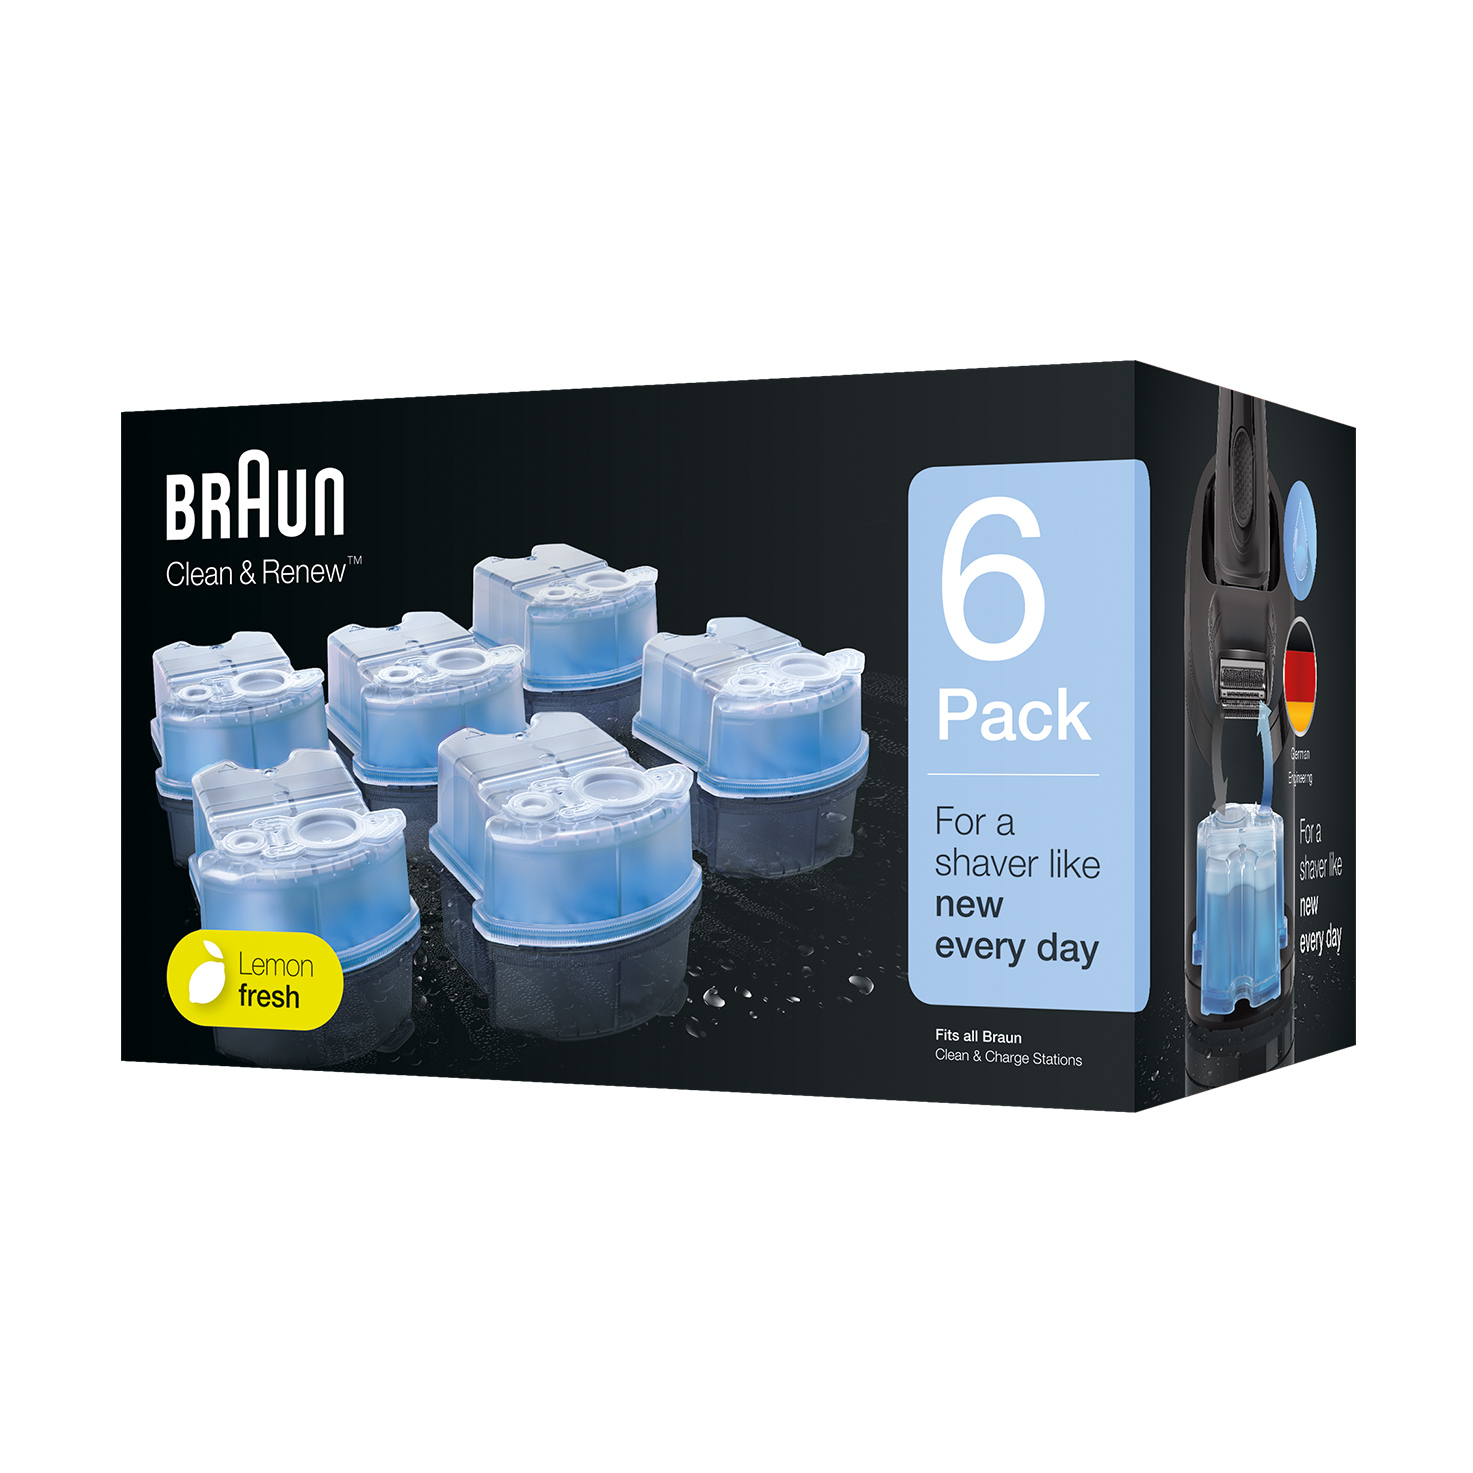 Braun Clean & Renew refill cartridges  CCR - 6 Pack